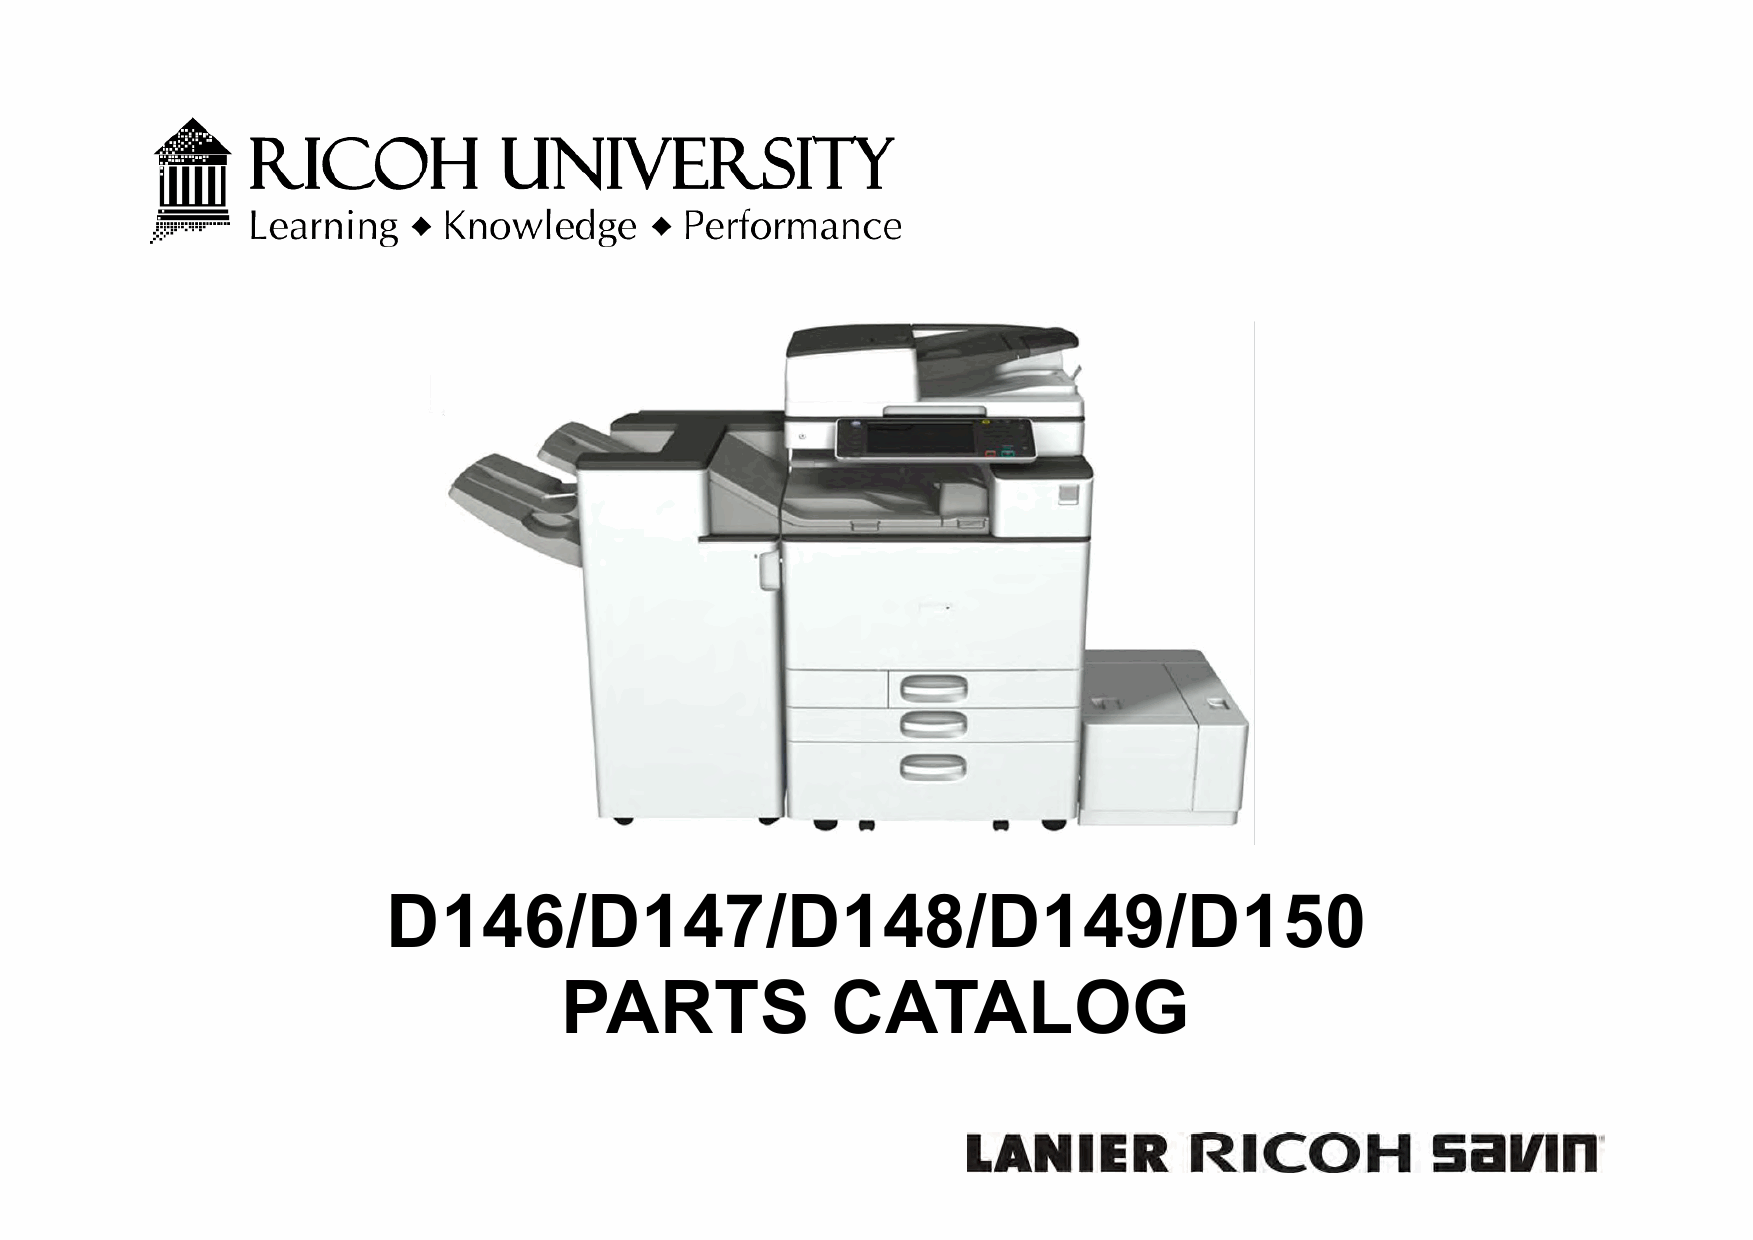 RICOH Aficio MP-C3003 C3503 C4503 C5503 C6003 D146 D147 D148 D149 D150 Parts Catalog-1